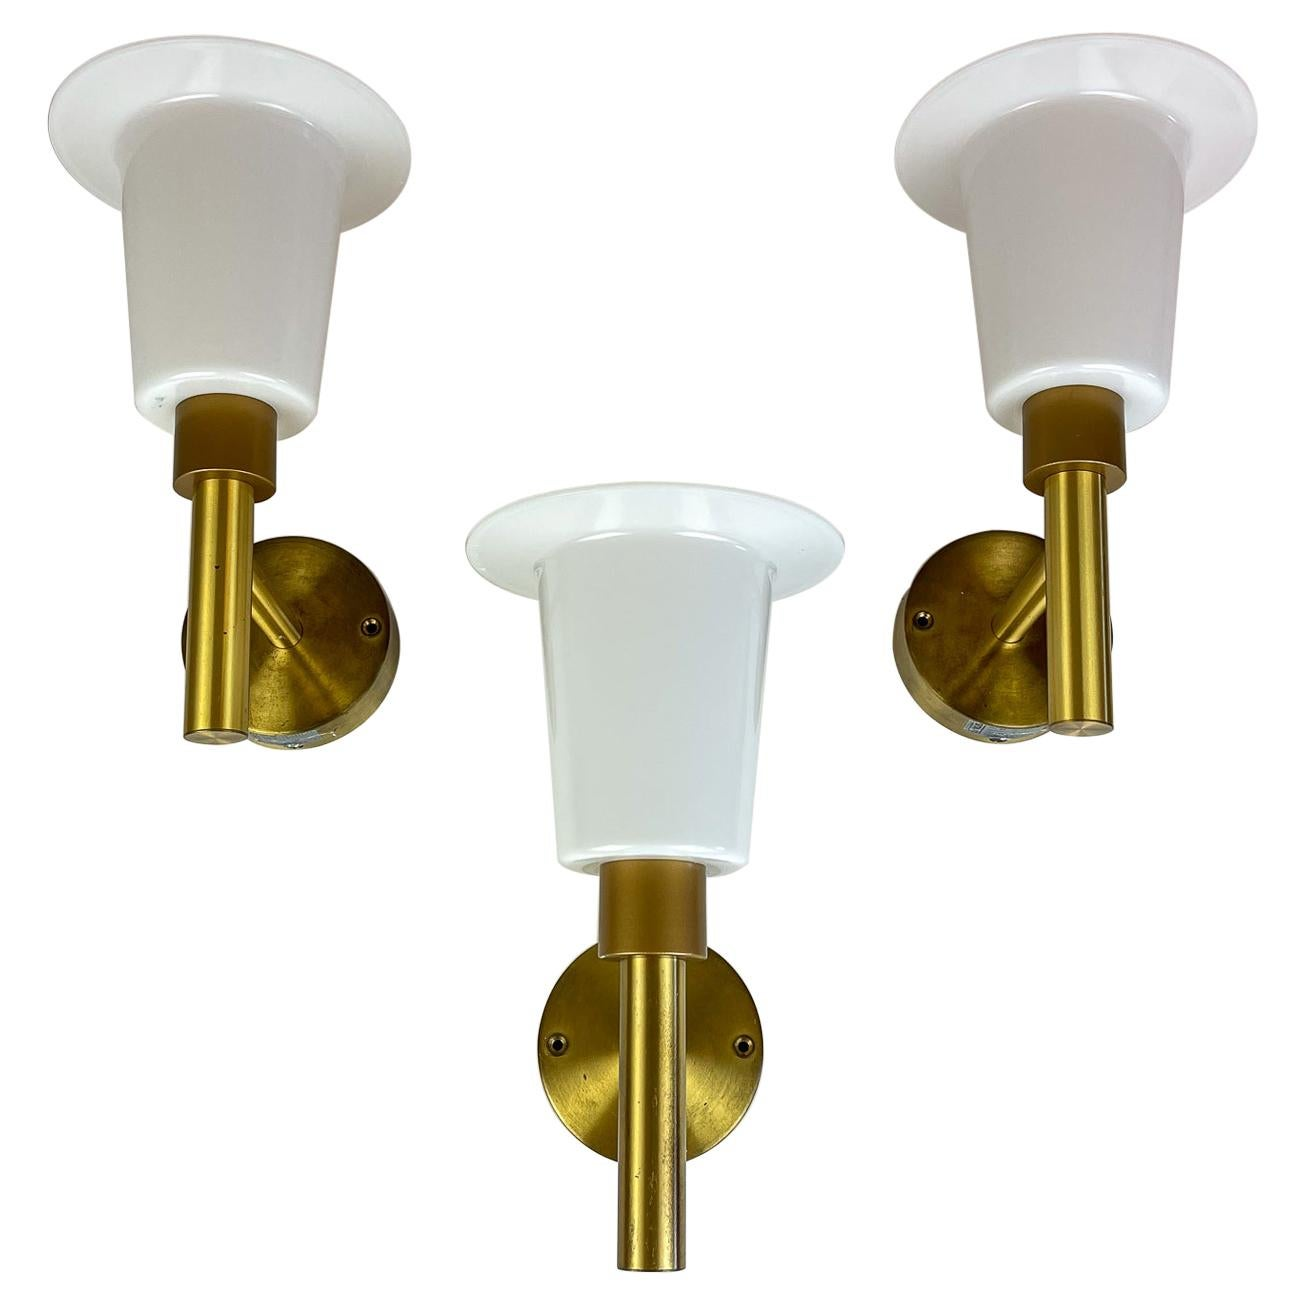 Midcentury Wall-Mounted Brass and Acrylic Lamps Luxus, Sweden, 1960s